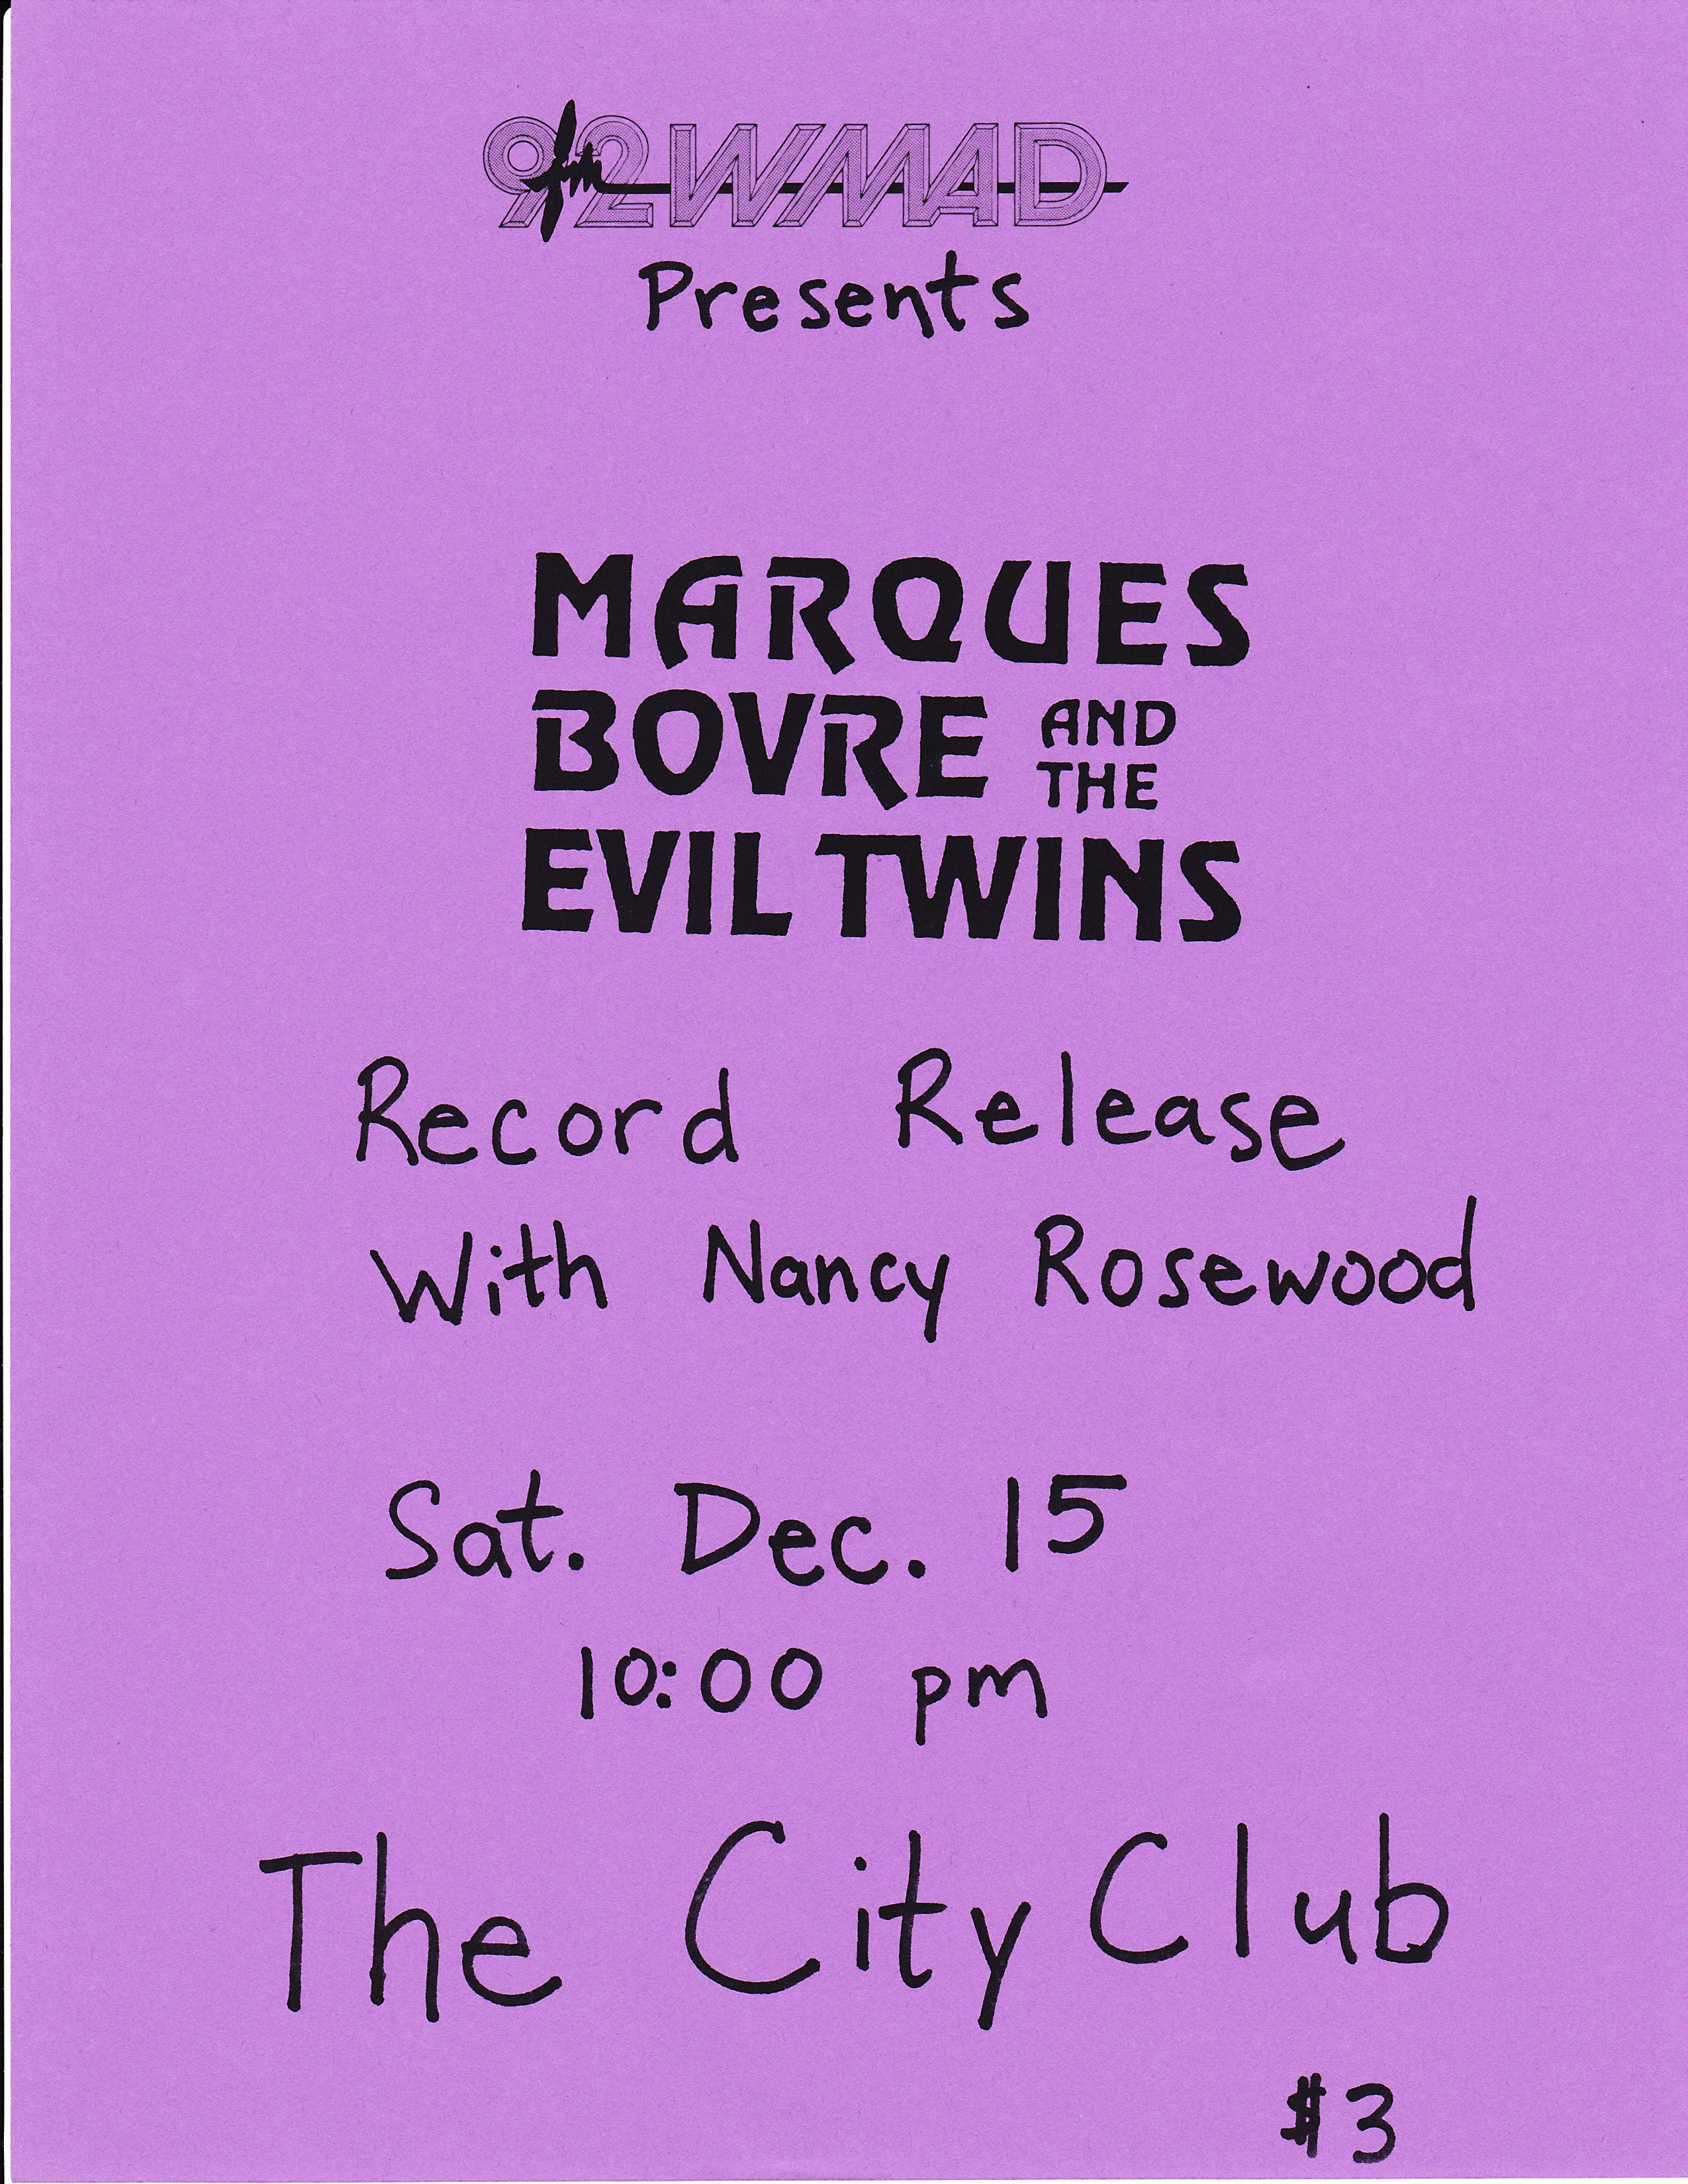 Marques Bovre and the Evil Twins, December 15, 1990